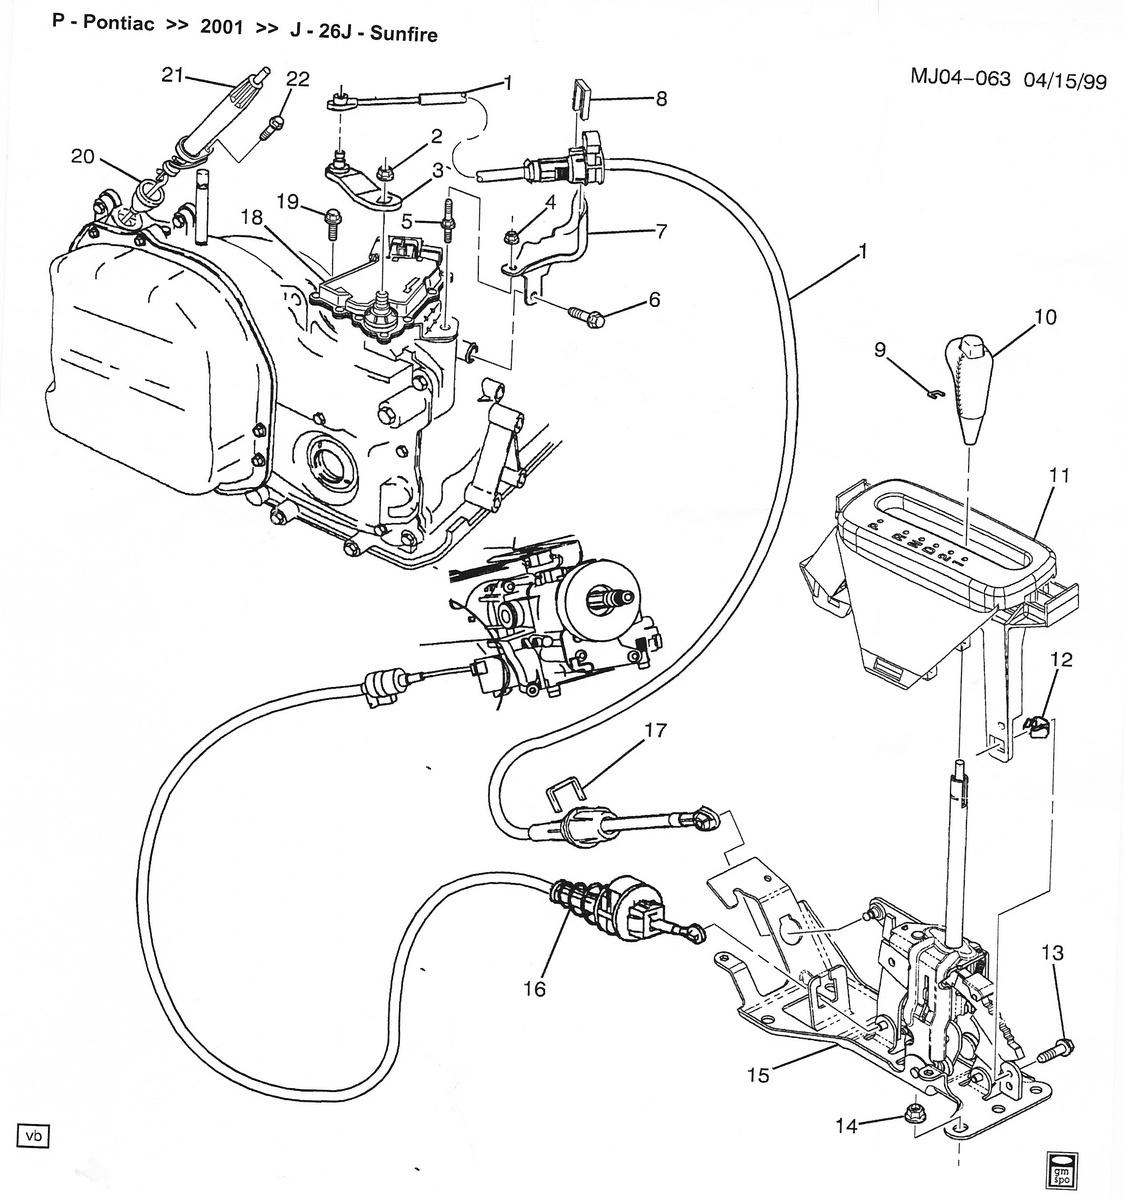 Discussion D608 ds527417 on 1997 toyota camry vacuum hose diagram